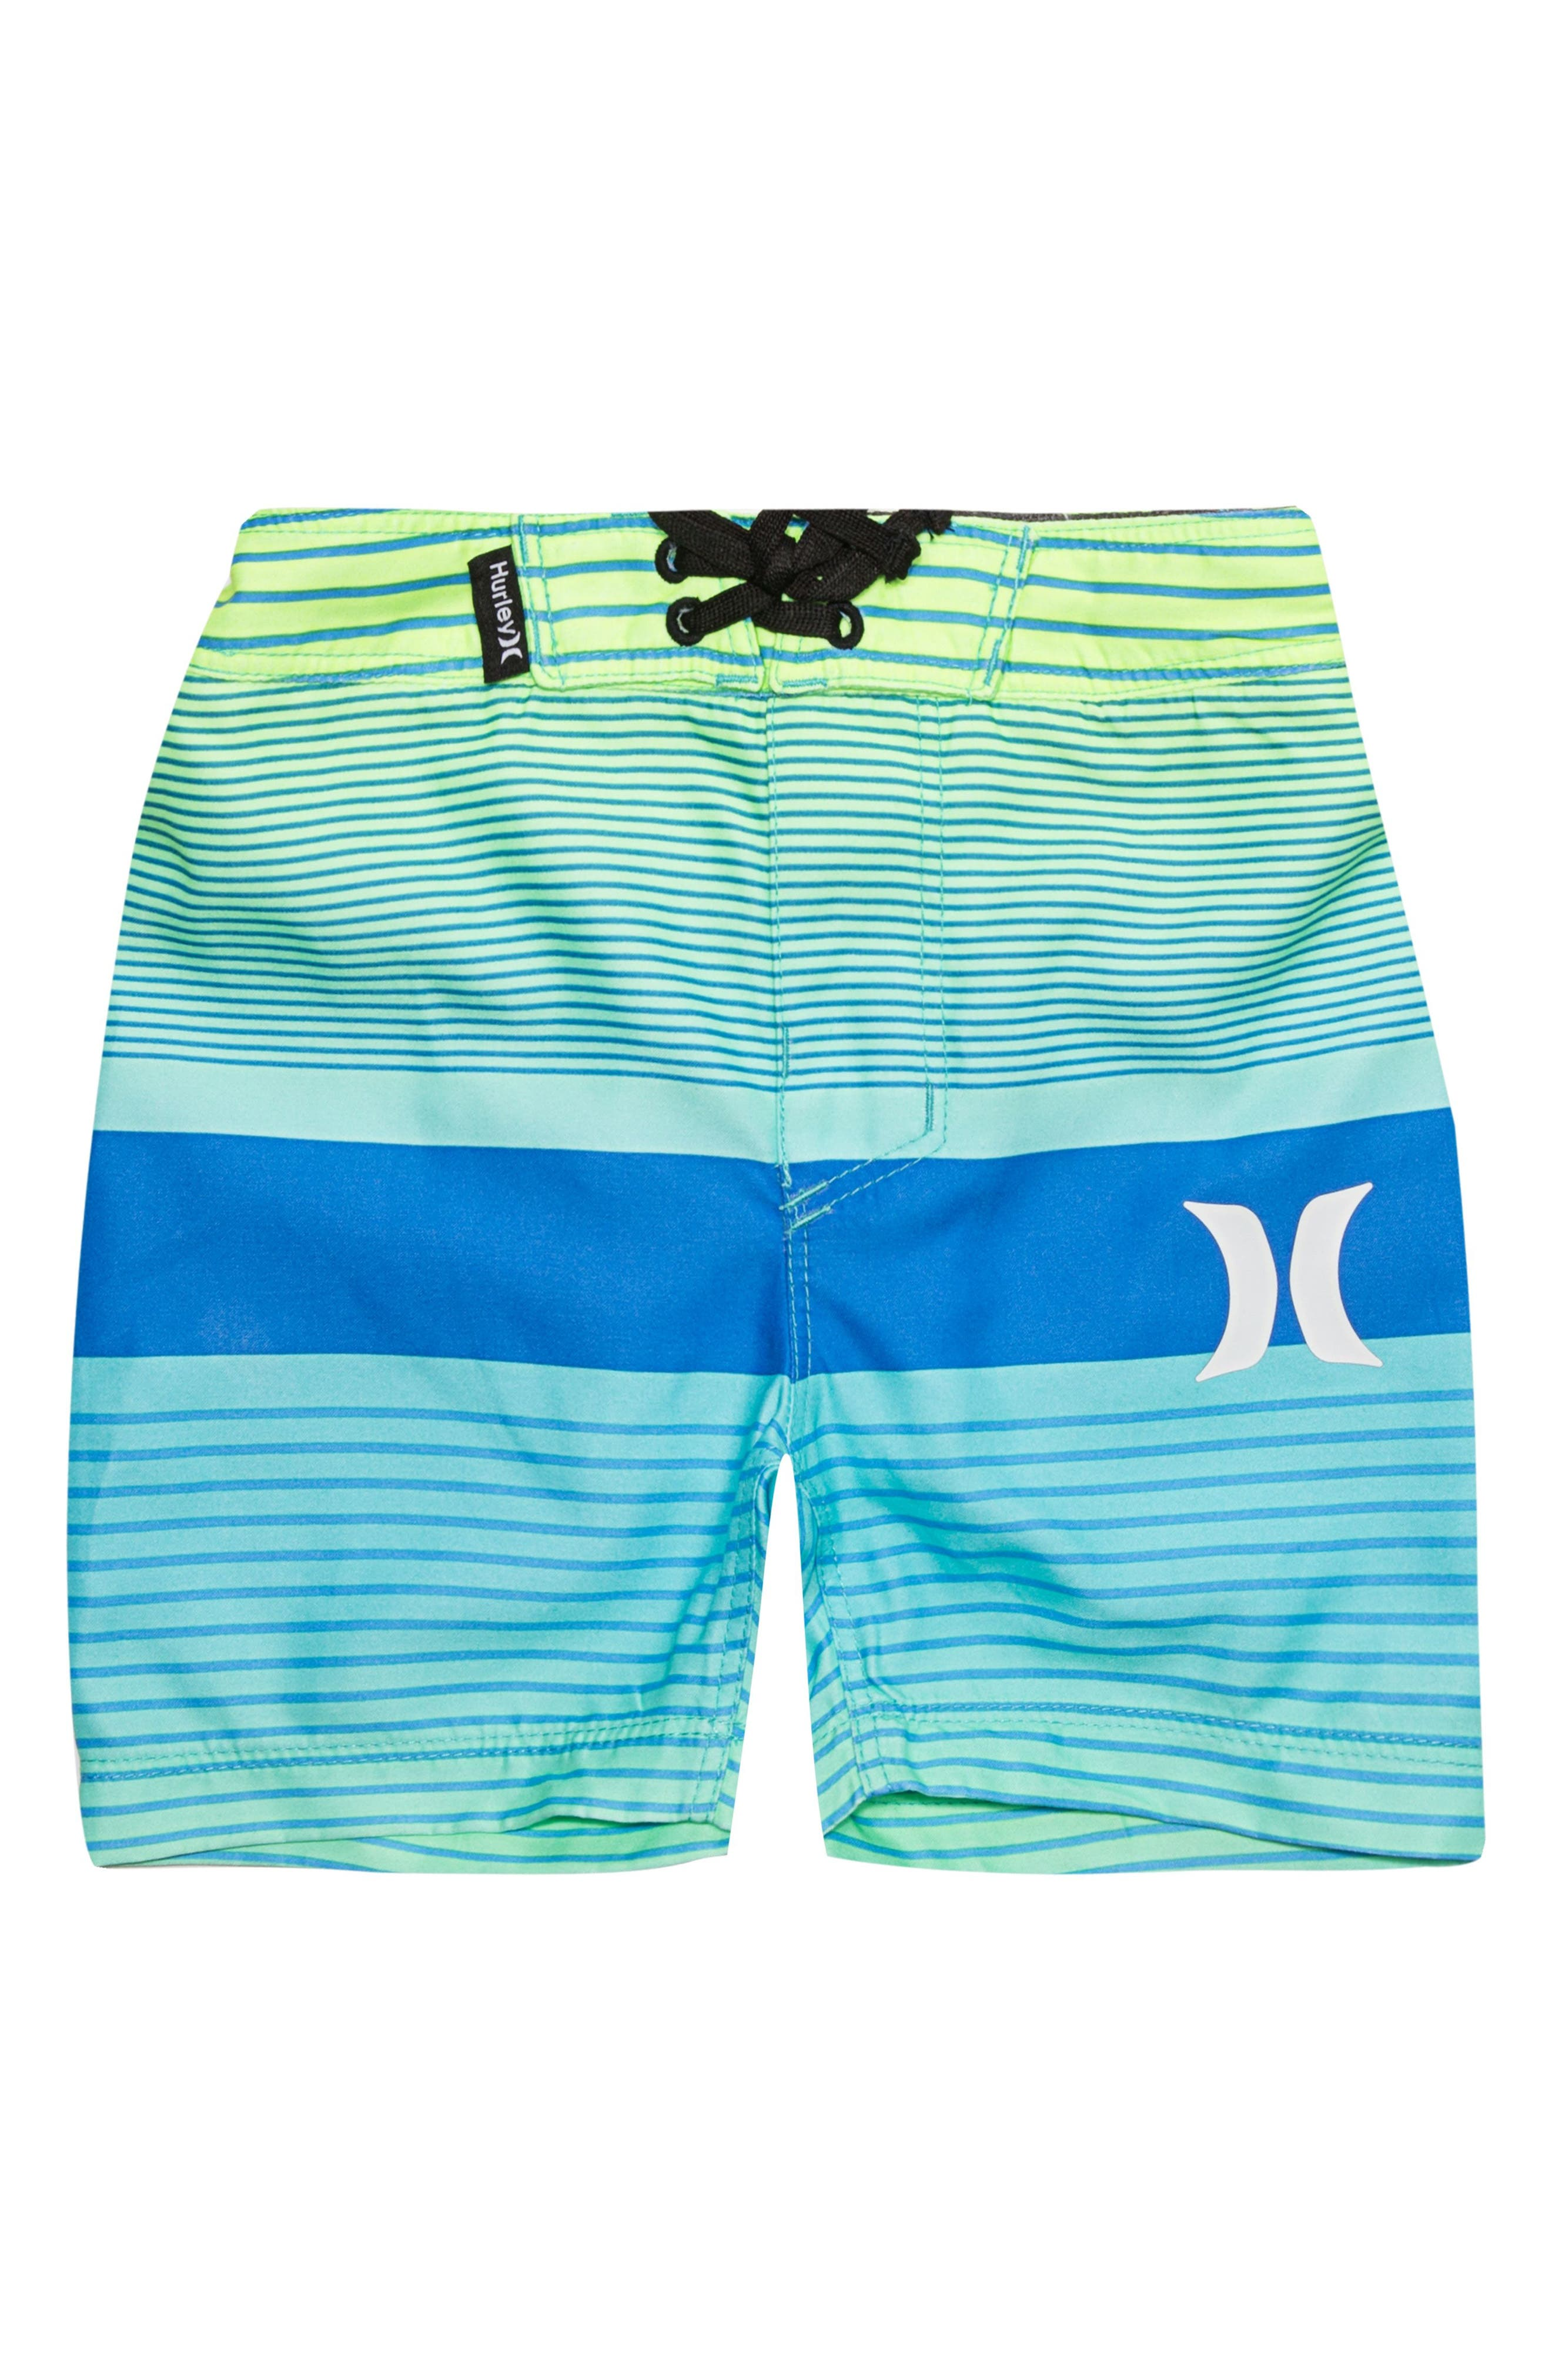 Line Up Board Shorts,                         Main,                         color, Ghost Green